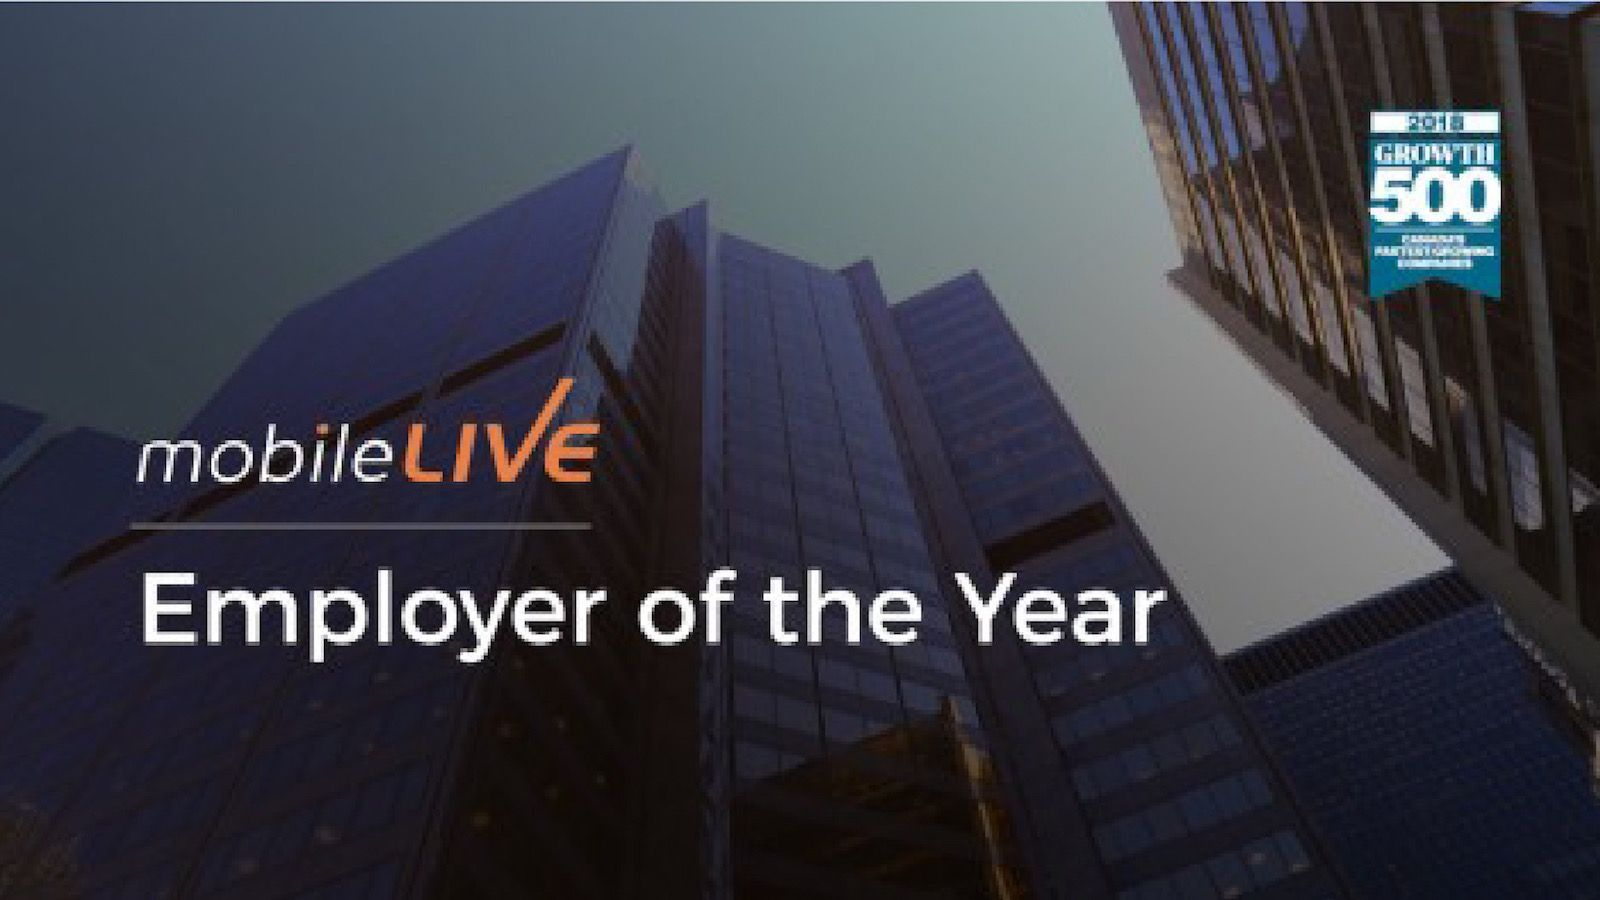 mobileLIVE Employer of the Year